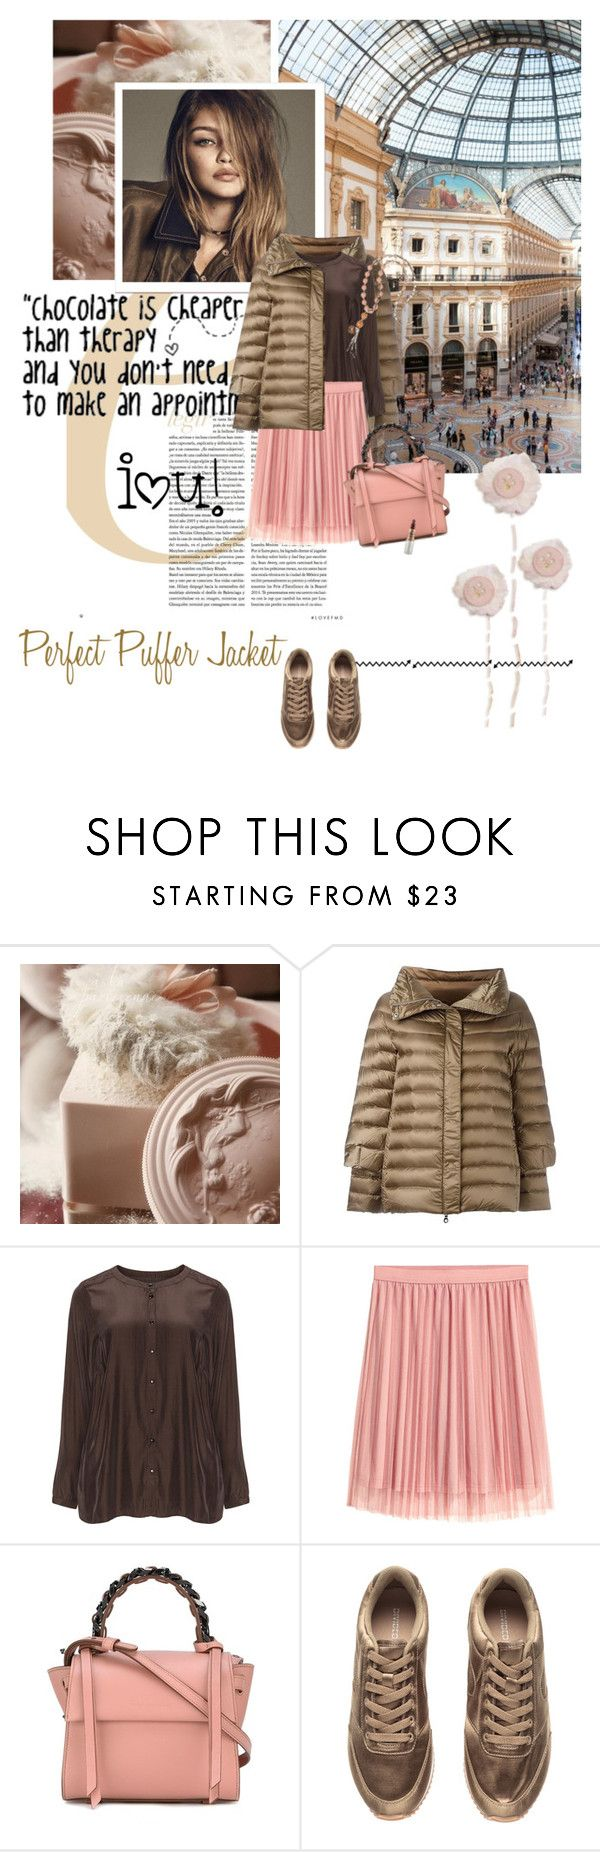 """""""Perfect Puffer Jackets"""" by lacas on Polyvore featuring Hetregó, Zizzi, Elena Ghisellini, Mariah Carey, Alexis Mabille and puffers"""